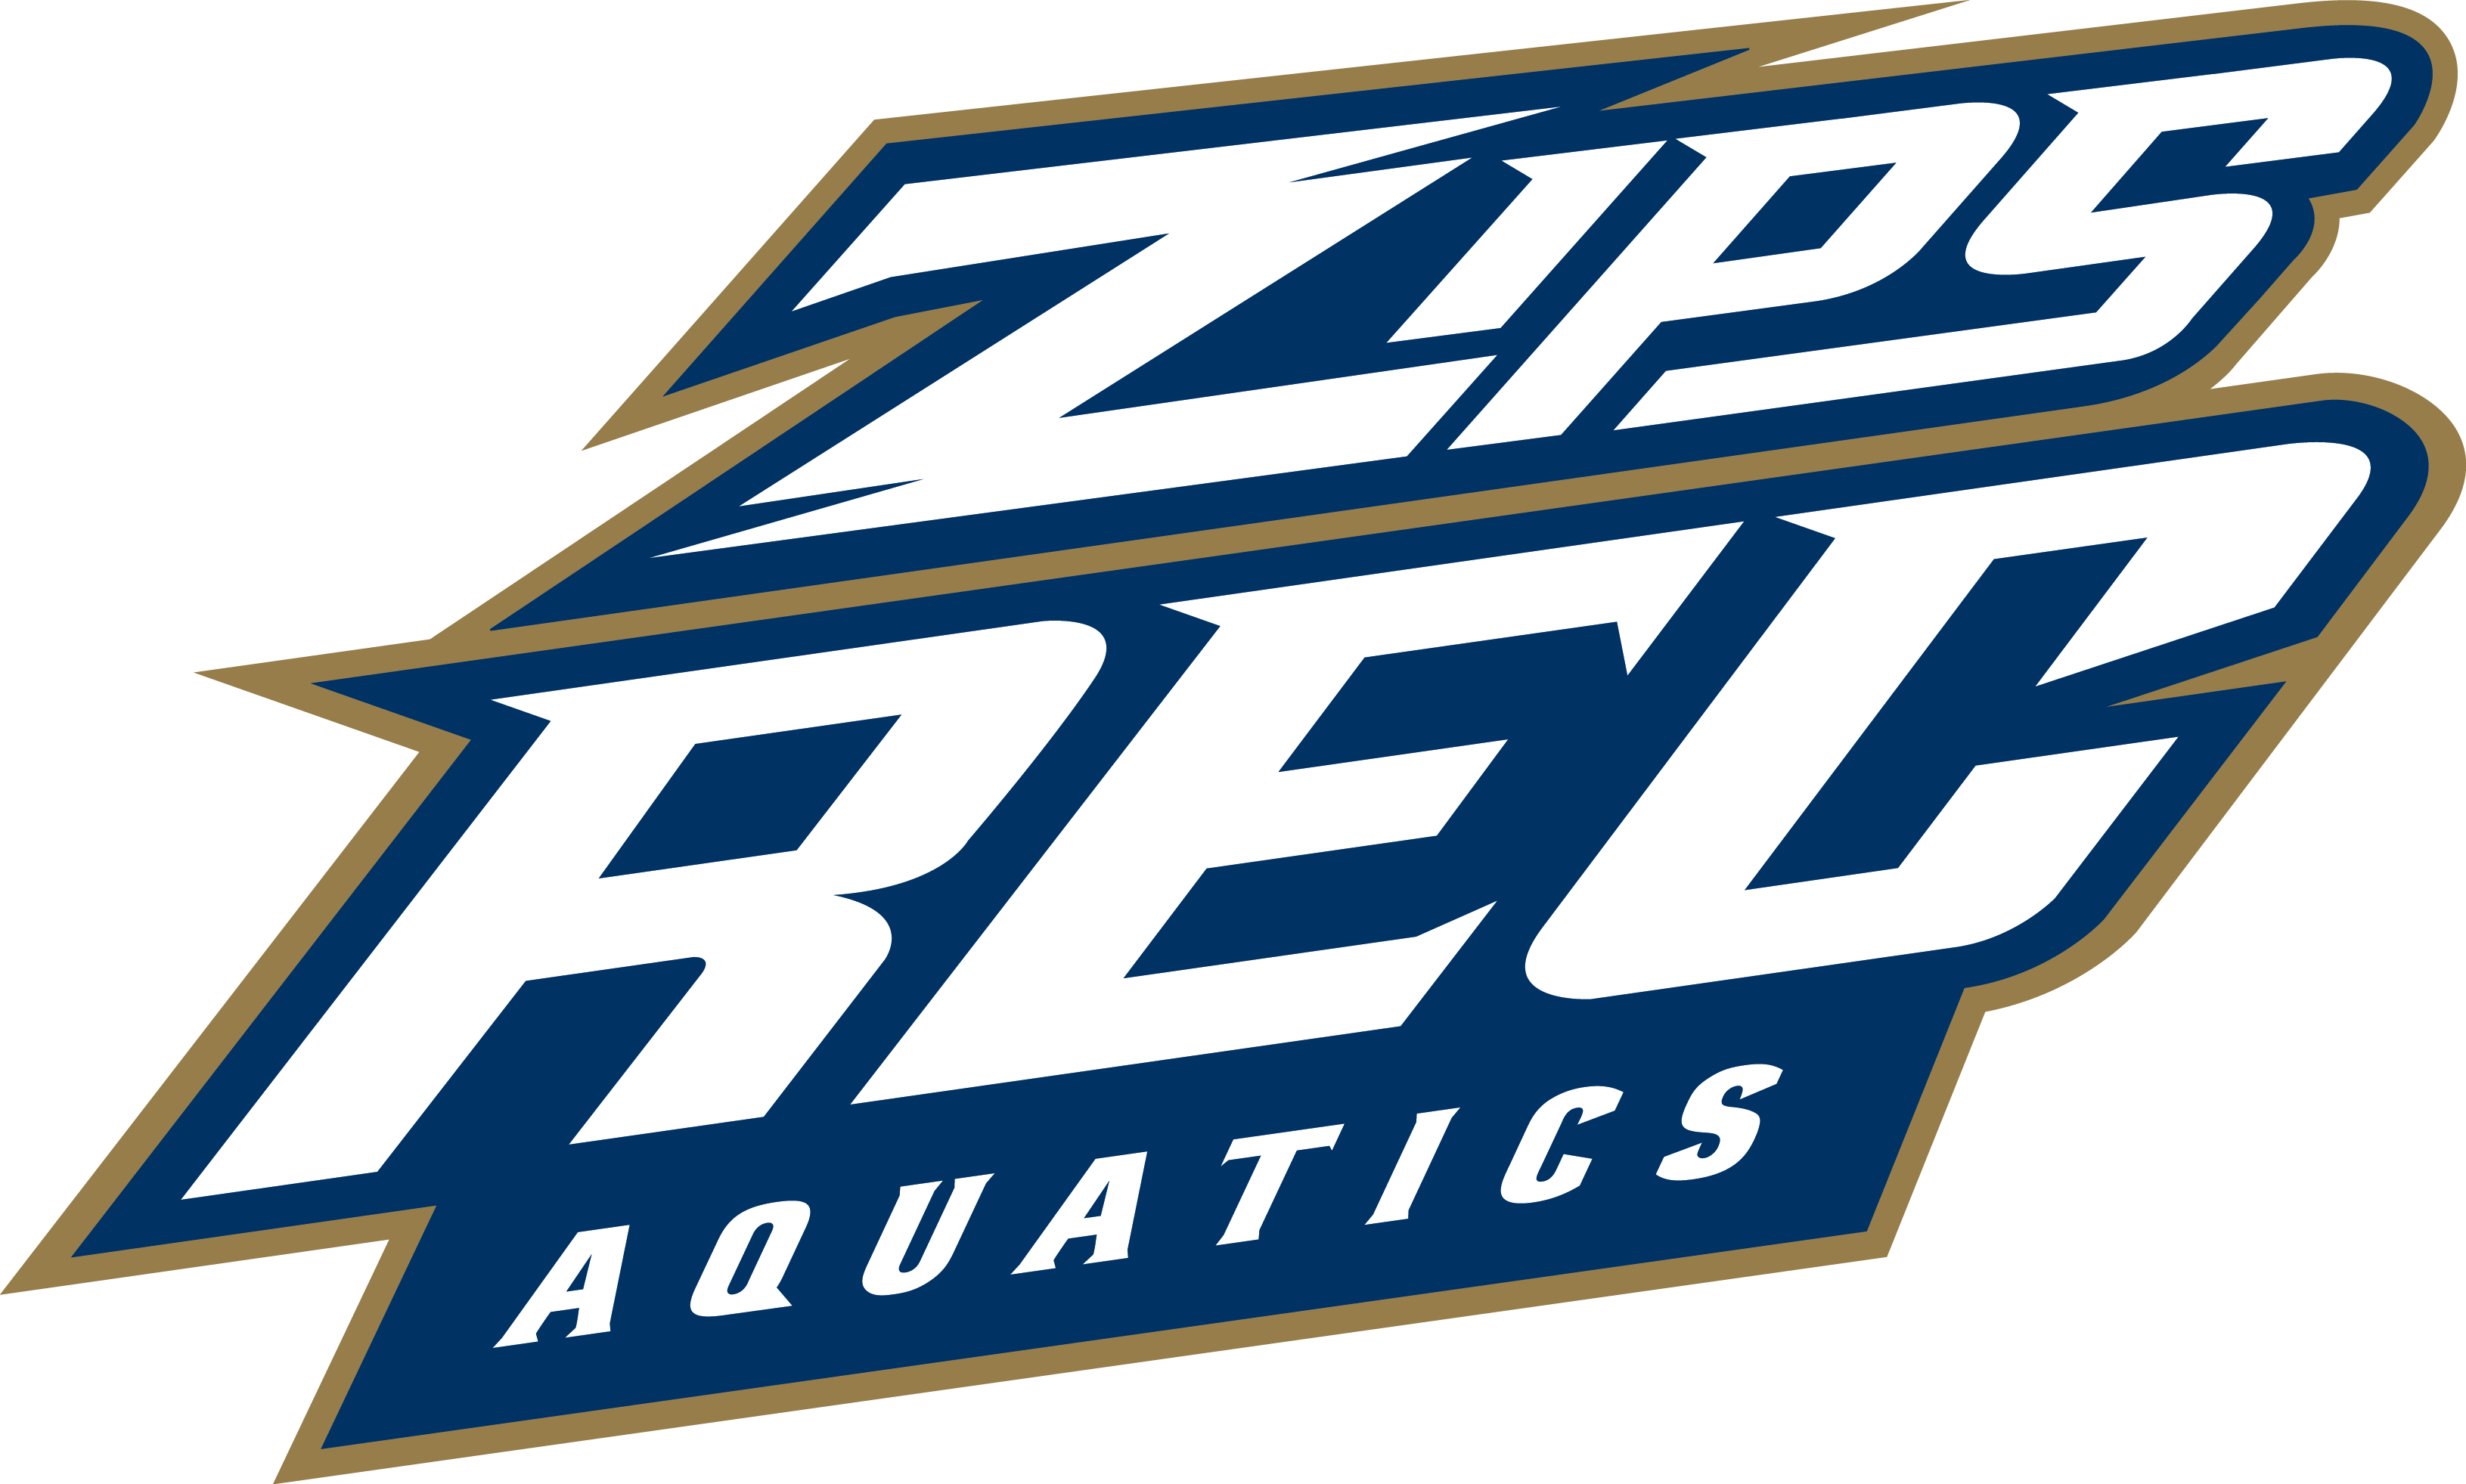 zips rec aquatics - Aquatic Director Jobs